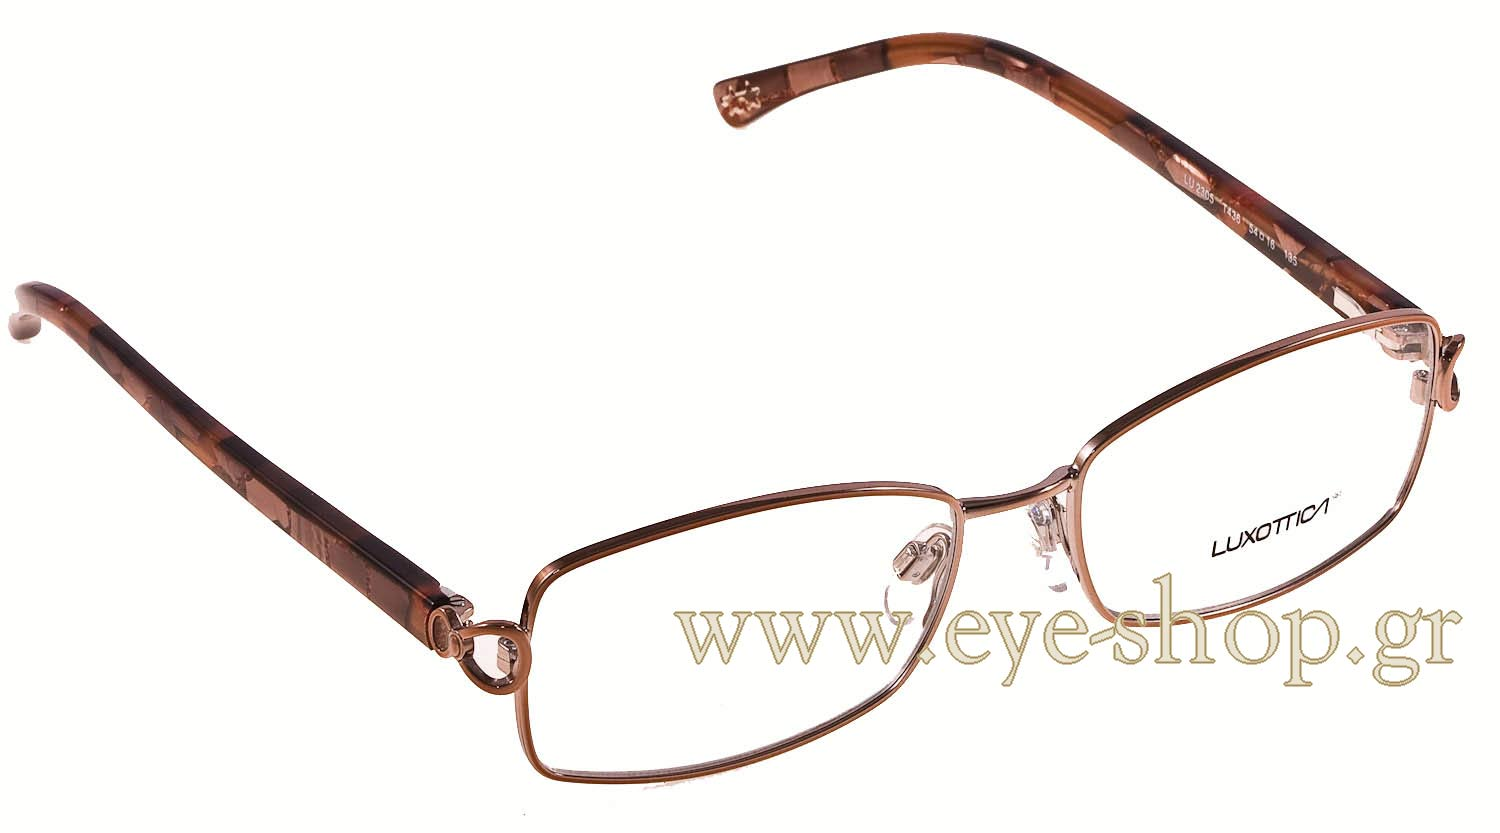 Eyeglass Frames Not Made By Luxottica : EYEWEAR LUXOTTICA 2305 T436 54? Women 2017 ver1.